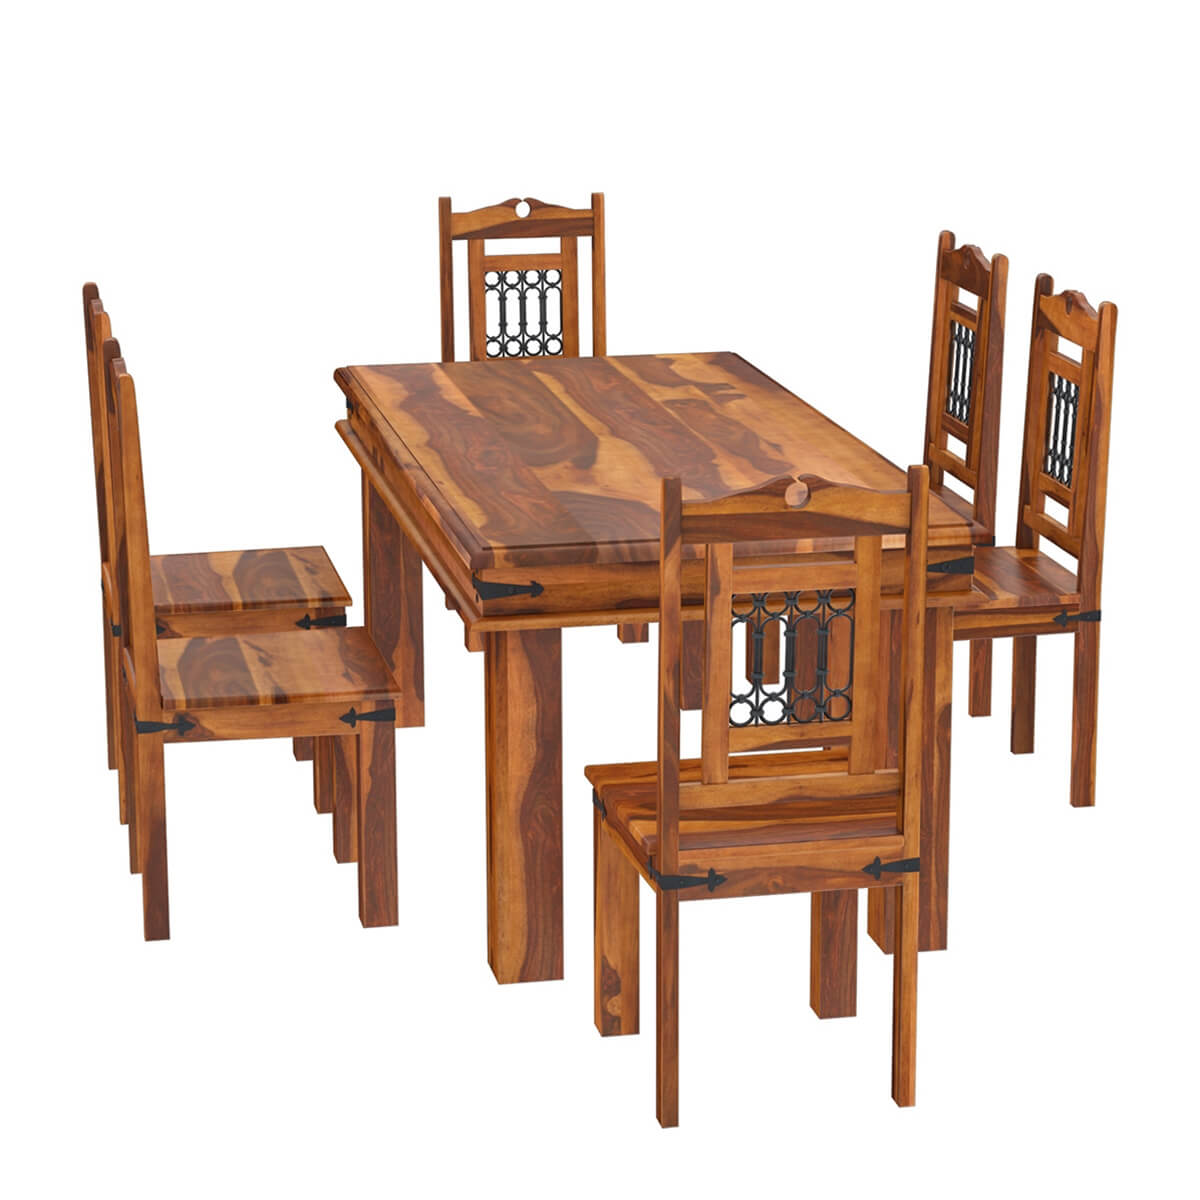 Philadelphia Classic 7pc Transitional Dining Room Table  : 20293 from www.sierralivingconcepts.com size 1200 x 1200 jpeg 279kB